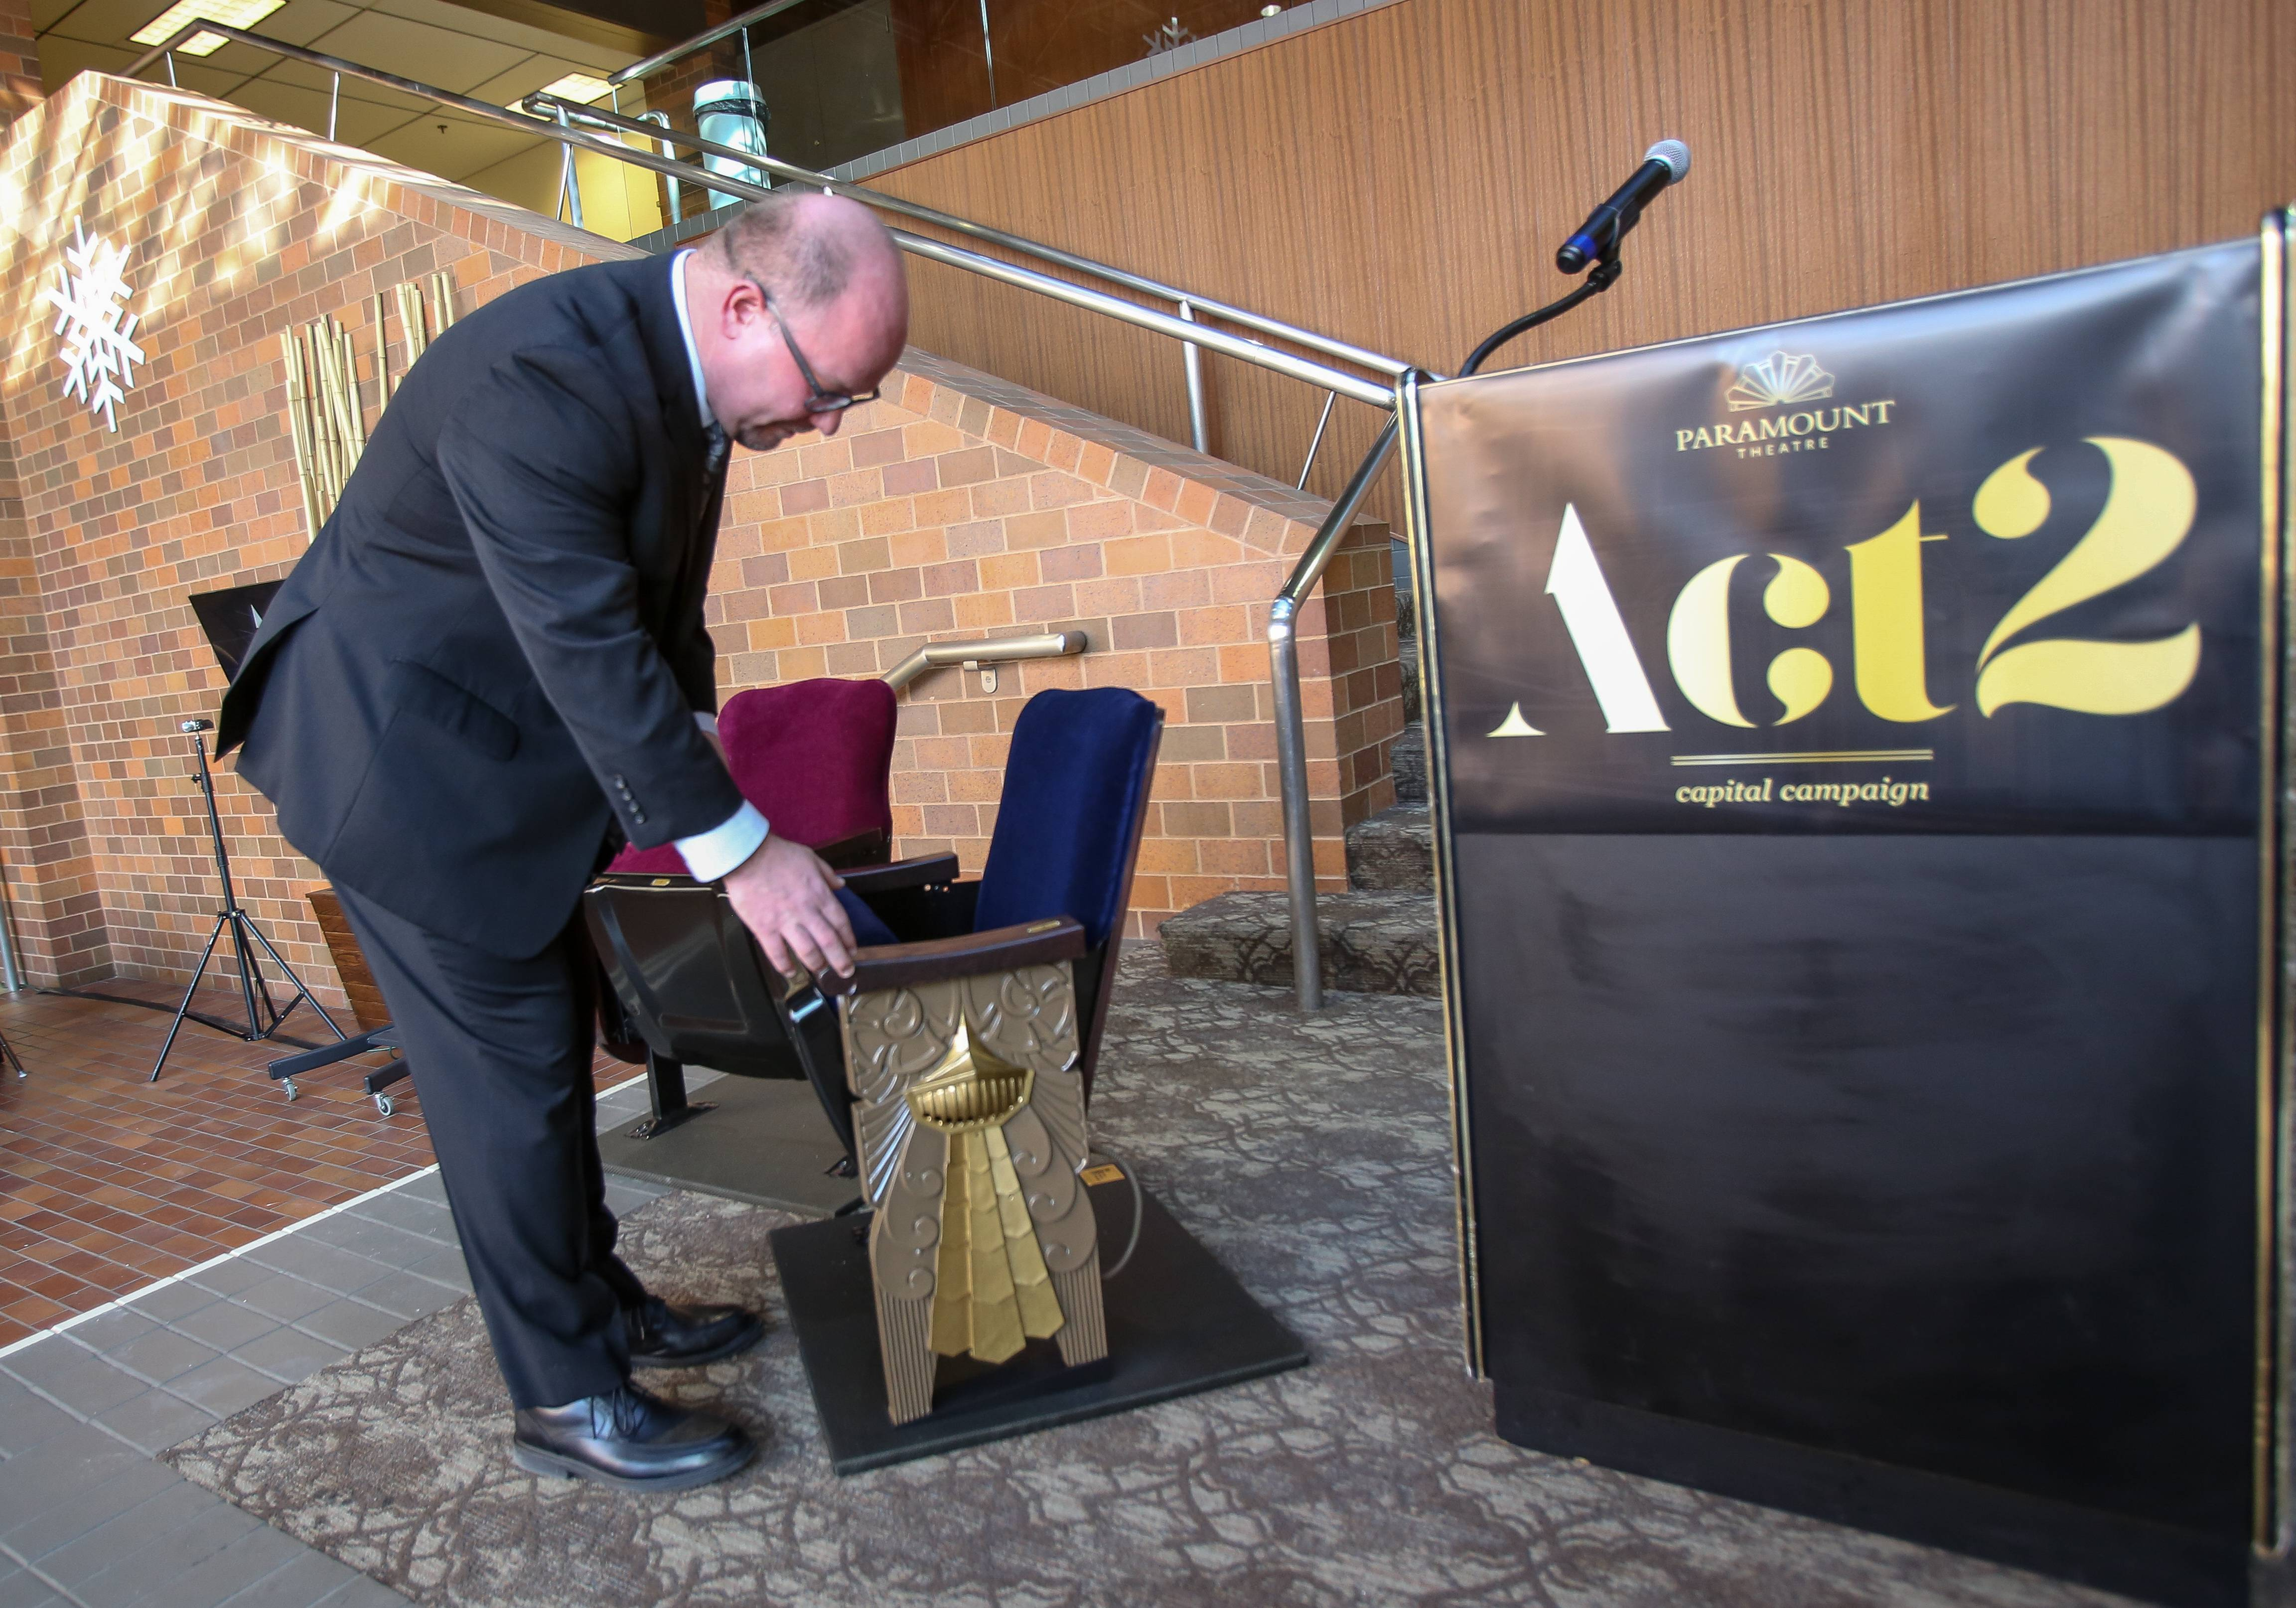 Tim Rater, president and CEO of the Paramount Theatre in Aurora, examines an old seat from the theater Thursday as supporters announce a $4.5 million capital campaign. About $1 million of the money the theater aims to raise will pay for replacement of all 1,888 seats in the 1931 theater, but the original decorative side panels will be preserved and reused.